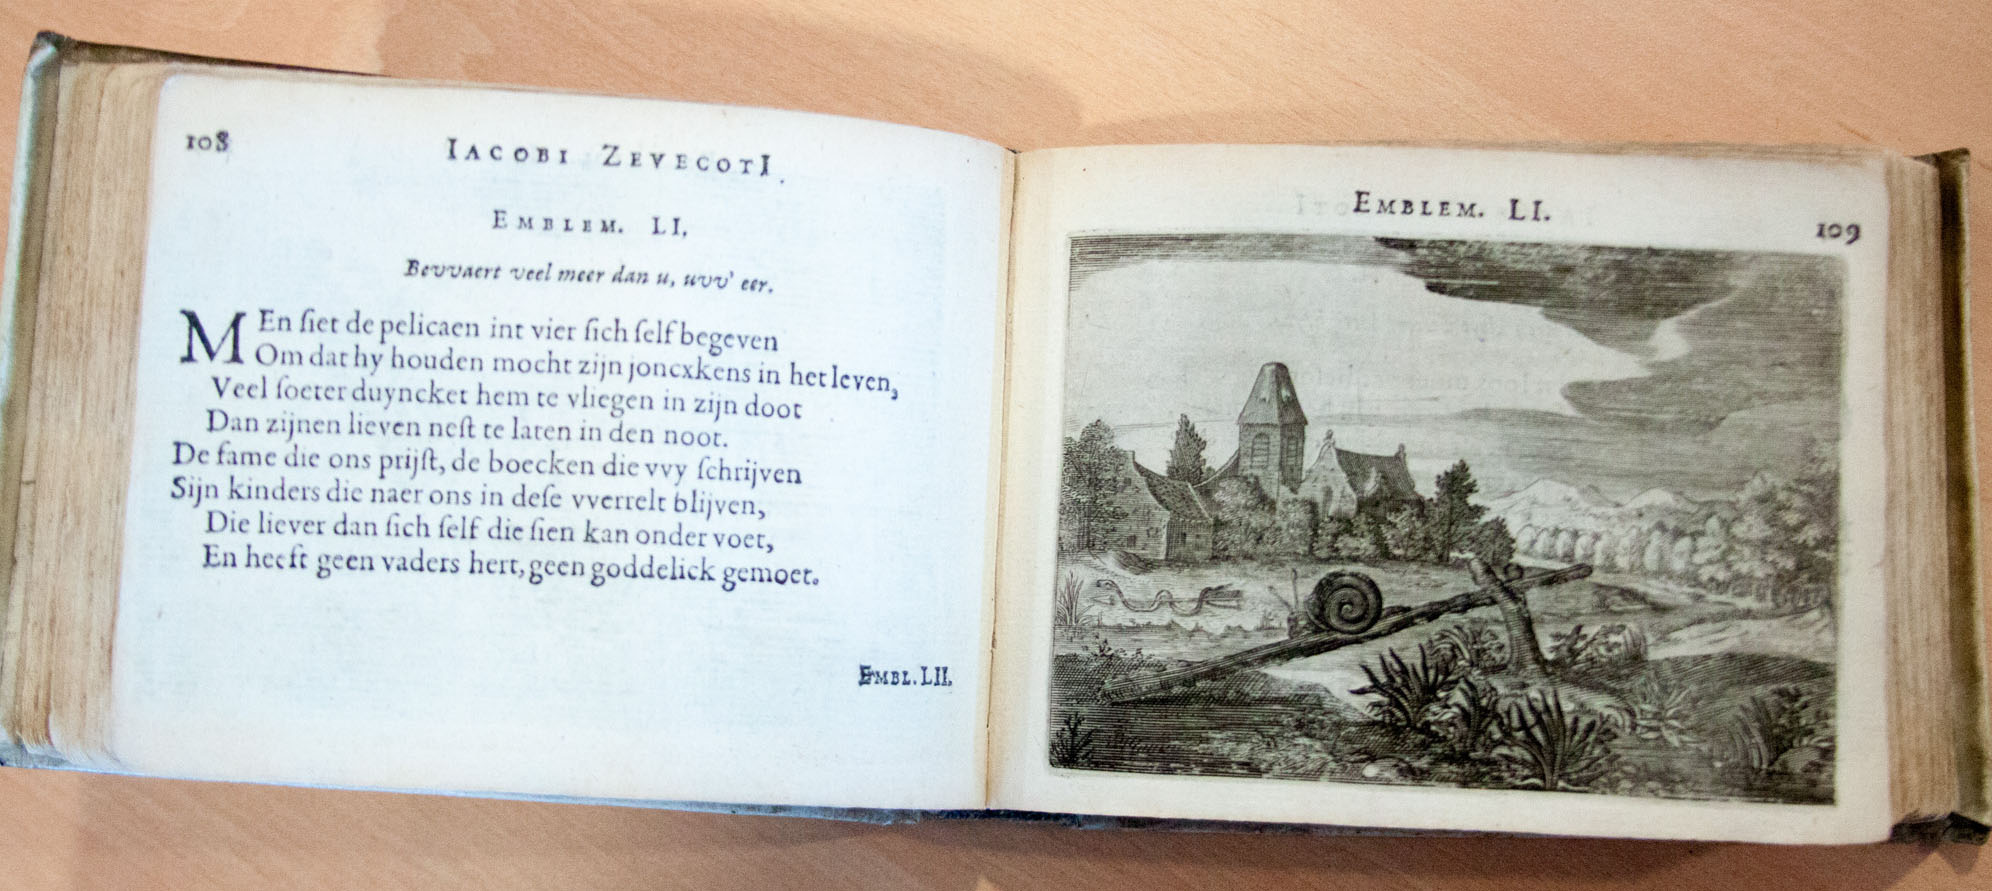 Liefde voor de Archieven: Elsevier Heritage Collection